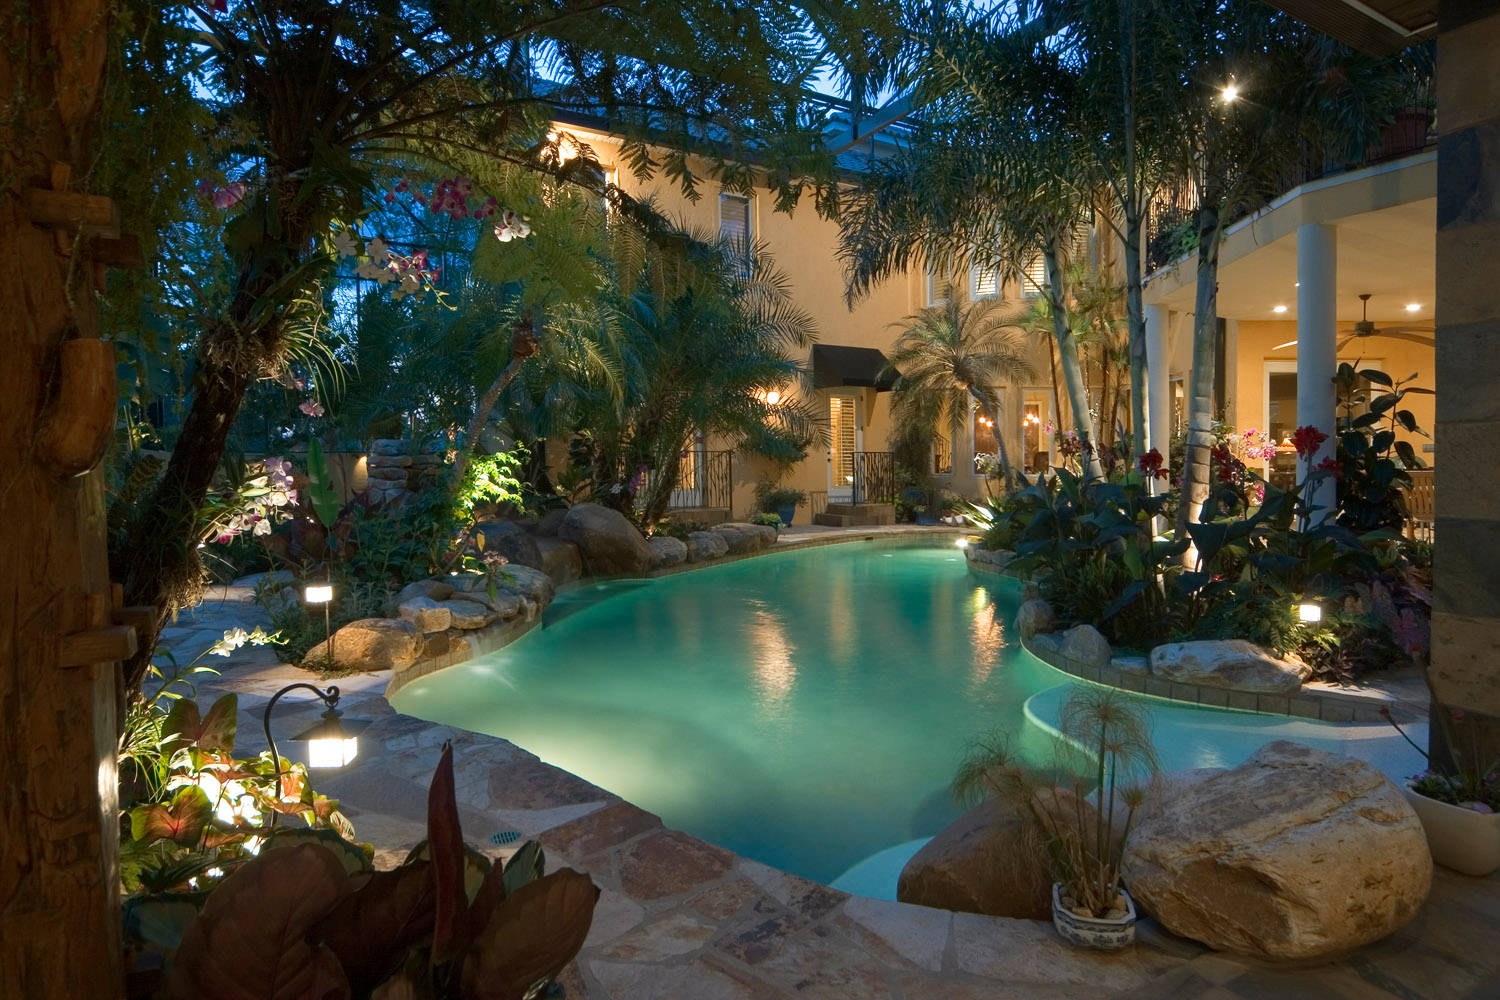 75 Beautiful Tropical Pool Pictures Ideas March 2021 Houzz